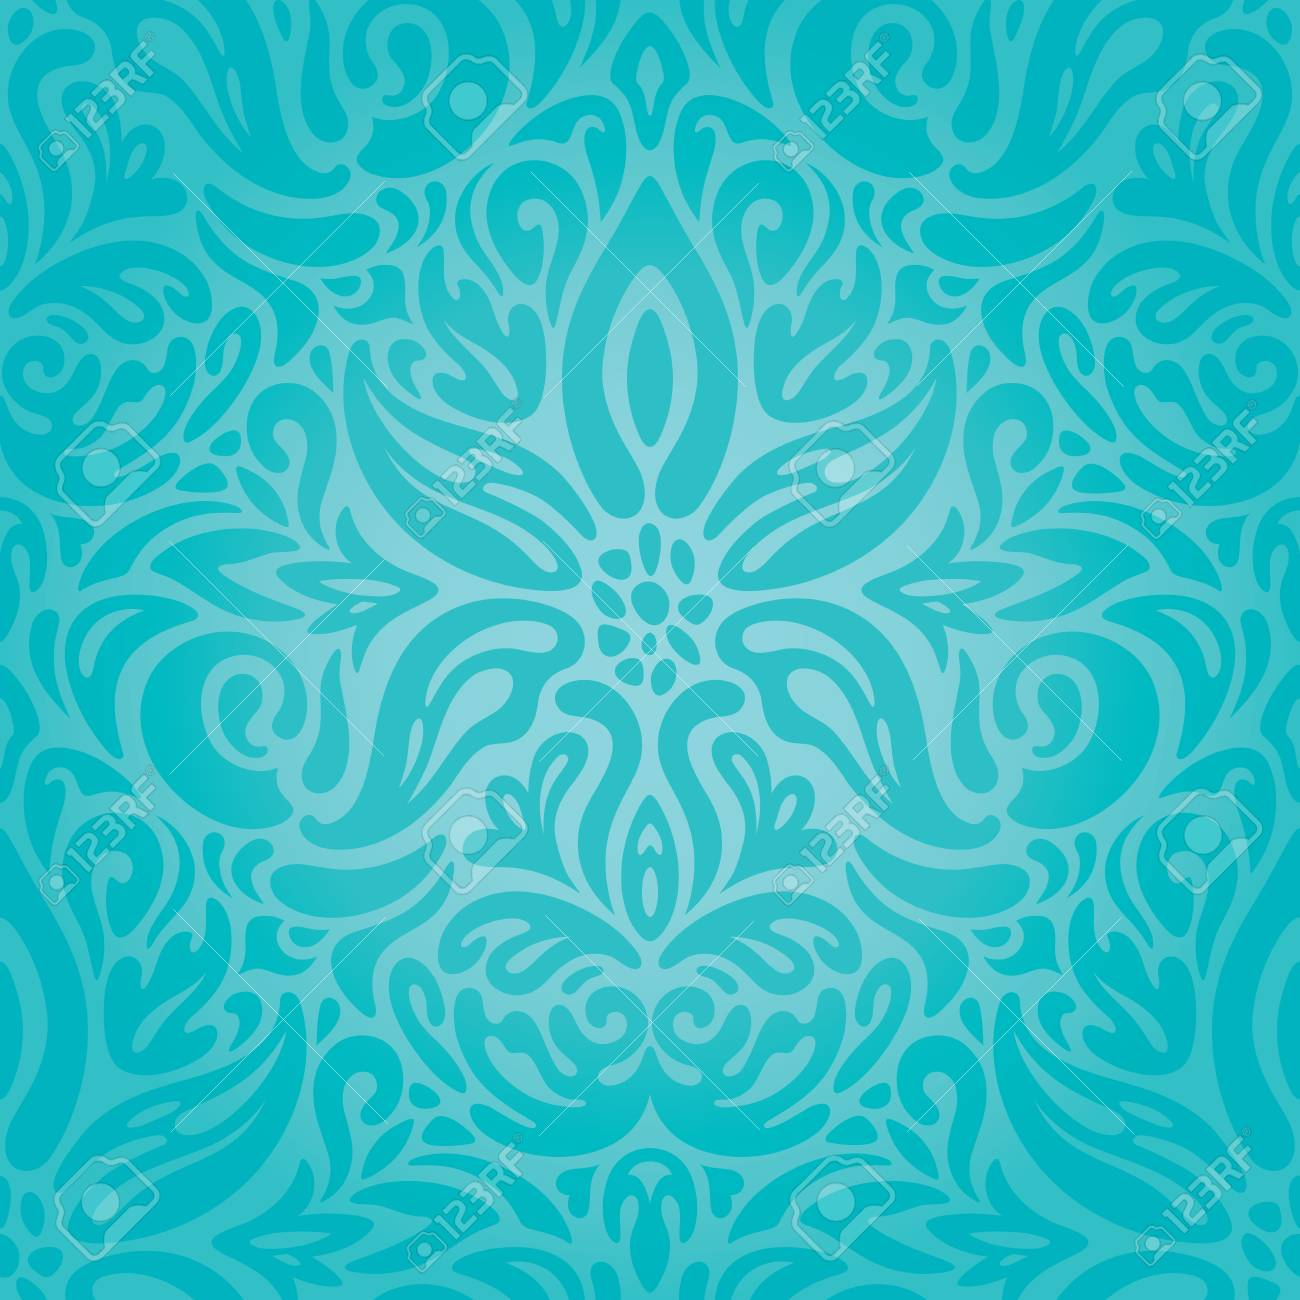 Turquoise Floral Holiday Vintage Background Wallpaper Green Blue